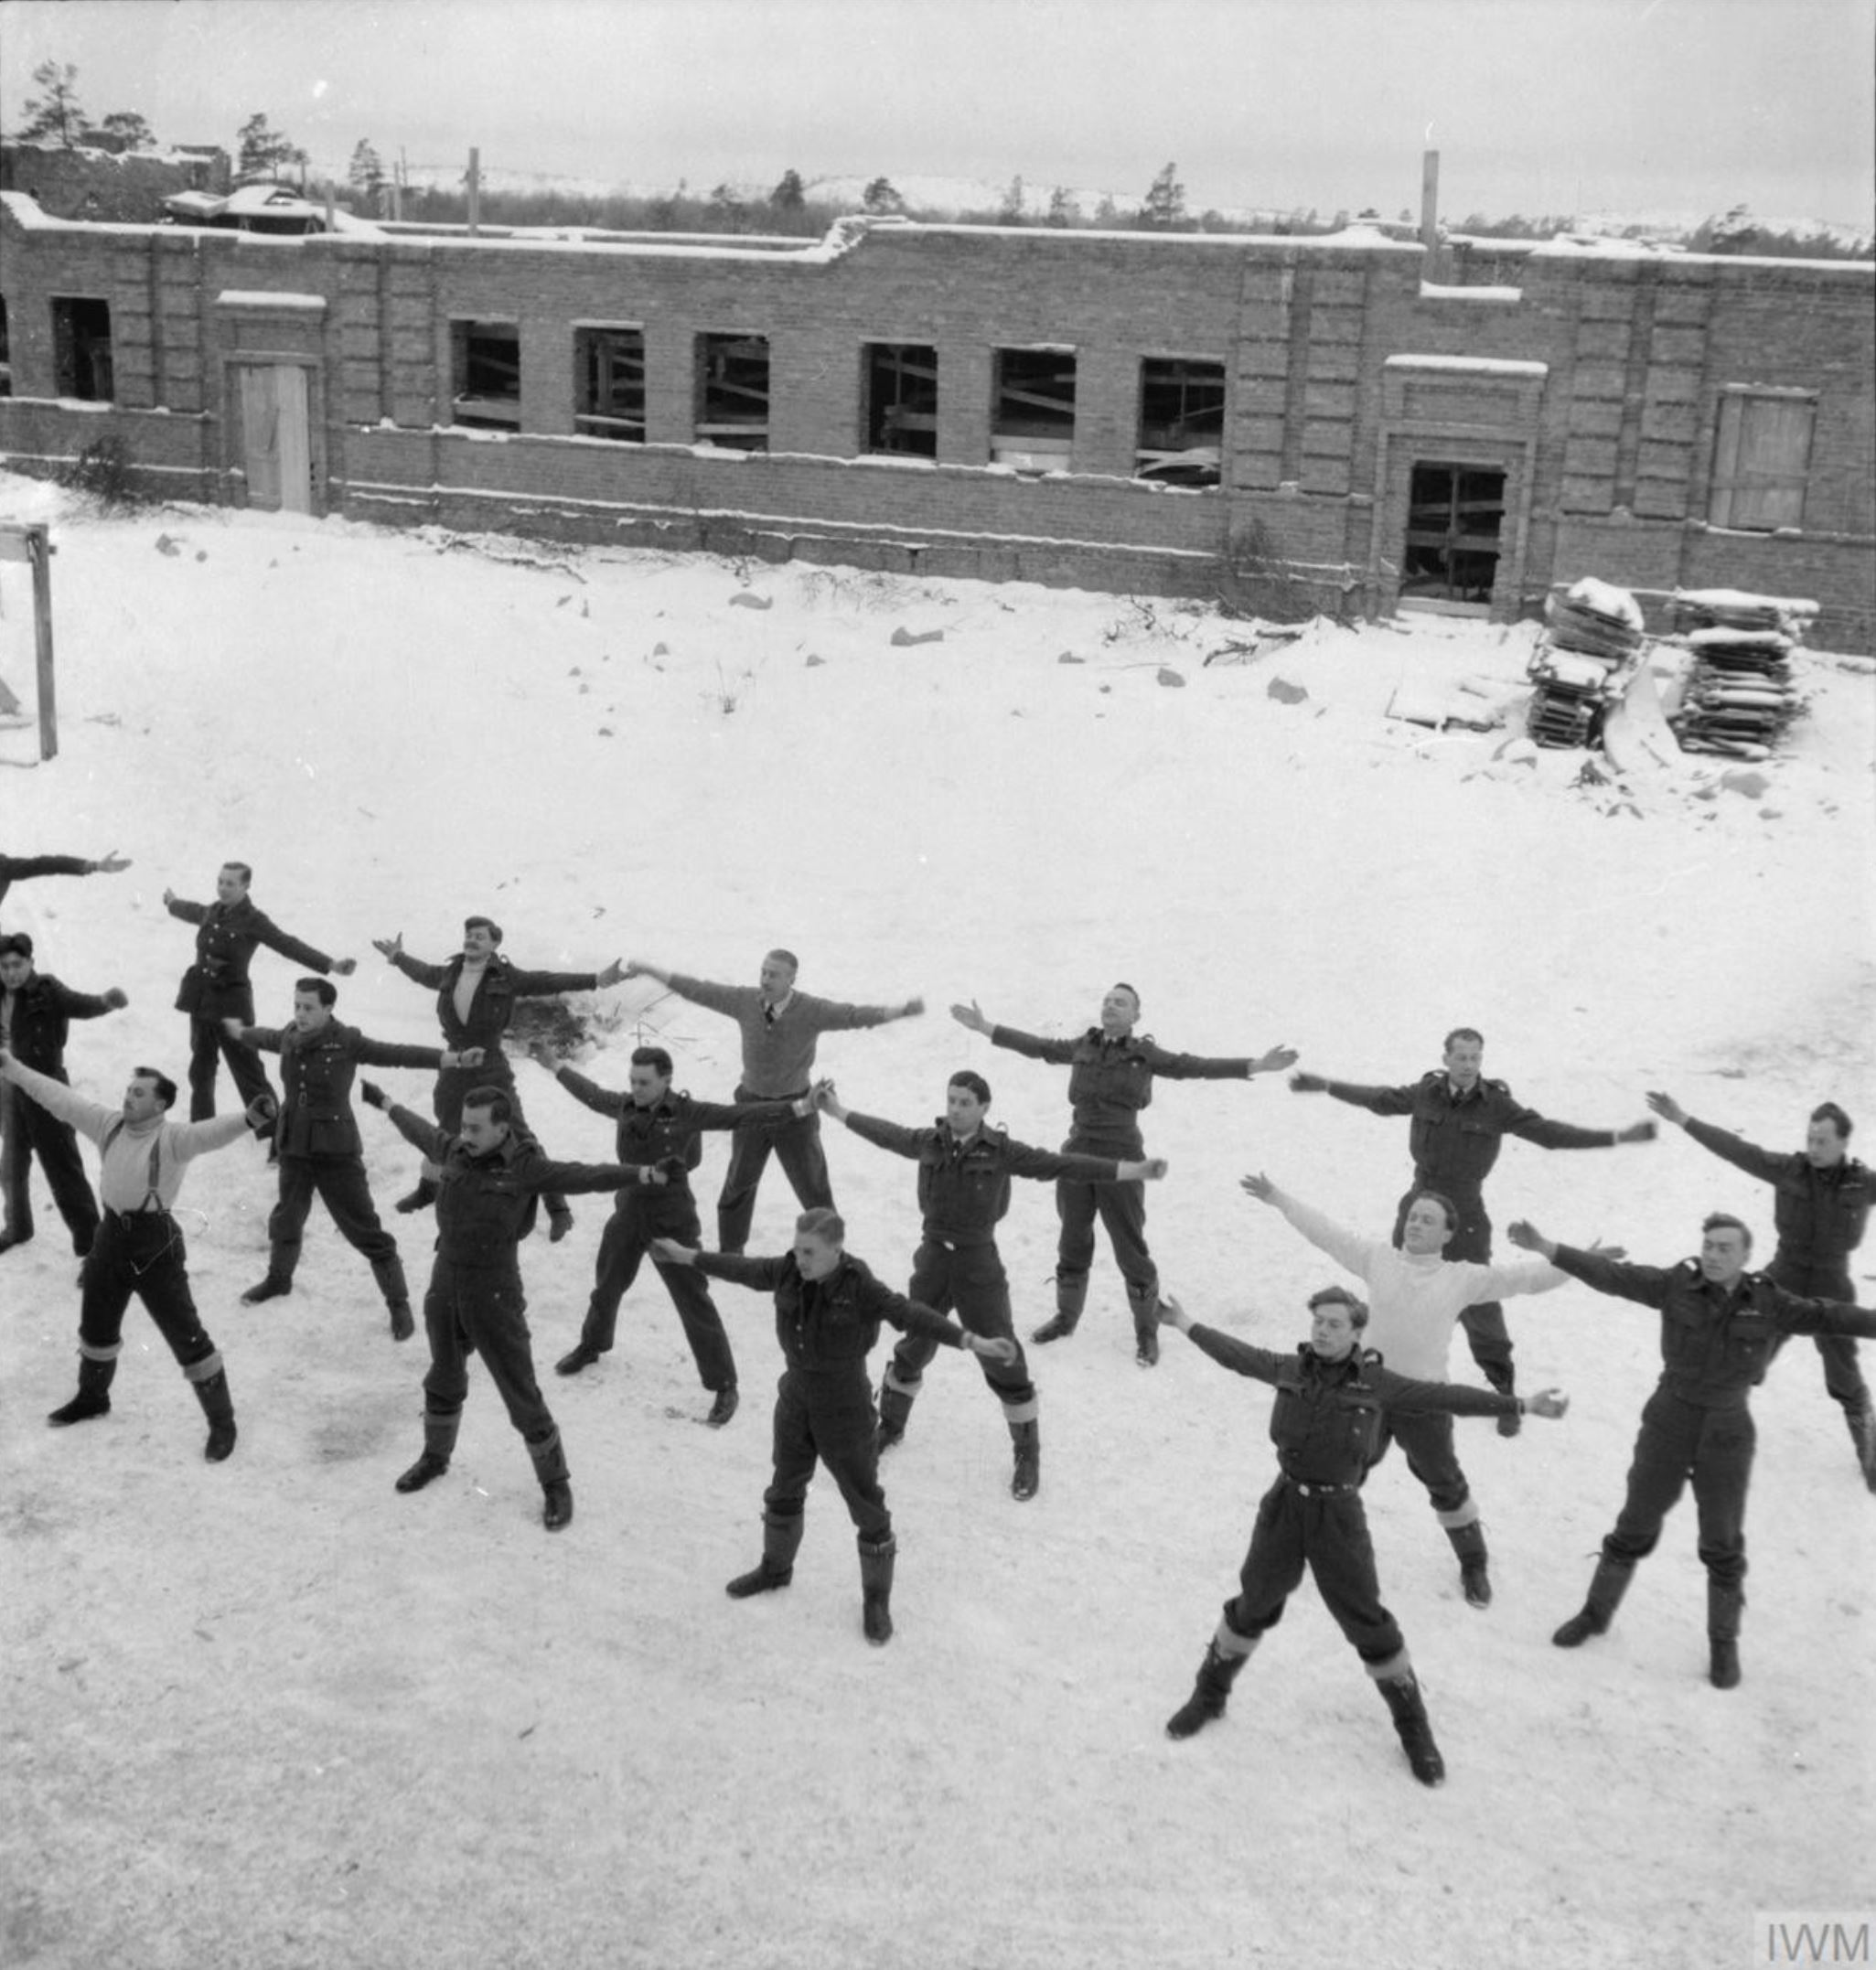 Aircrew from RAF 151 Wing doing their morning PT exercises Vaenga Murmansk USSR 1941 IWM CR142